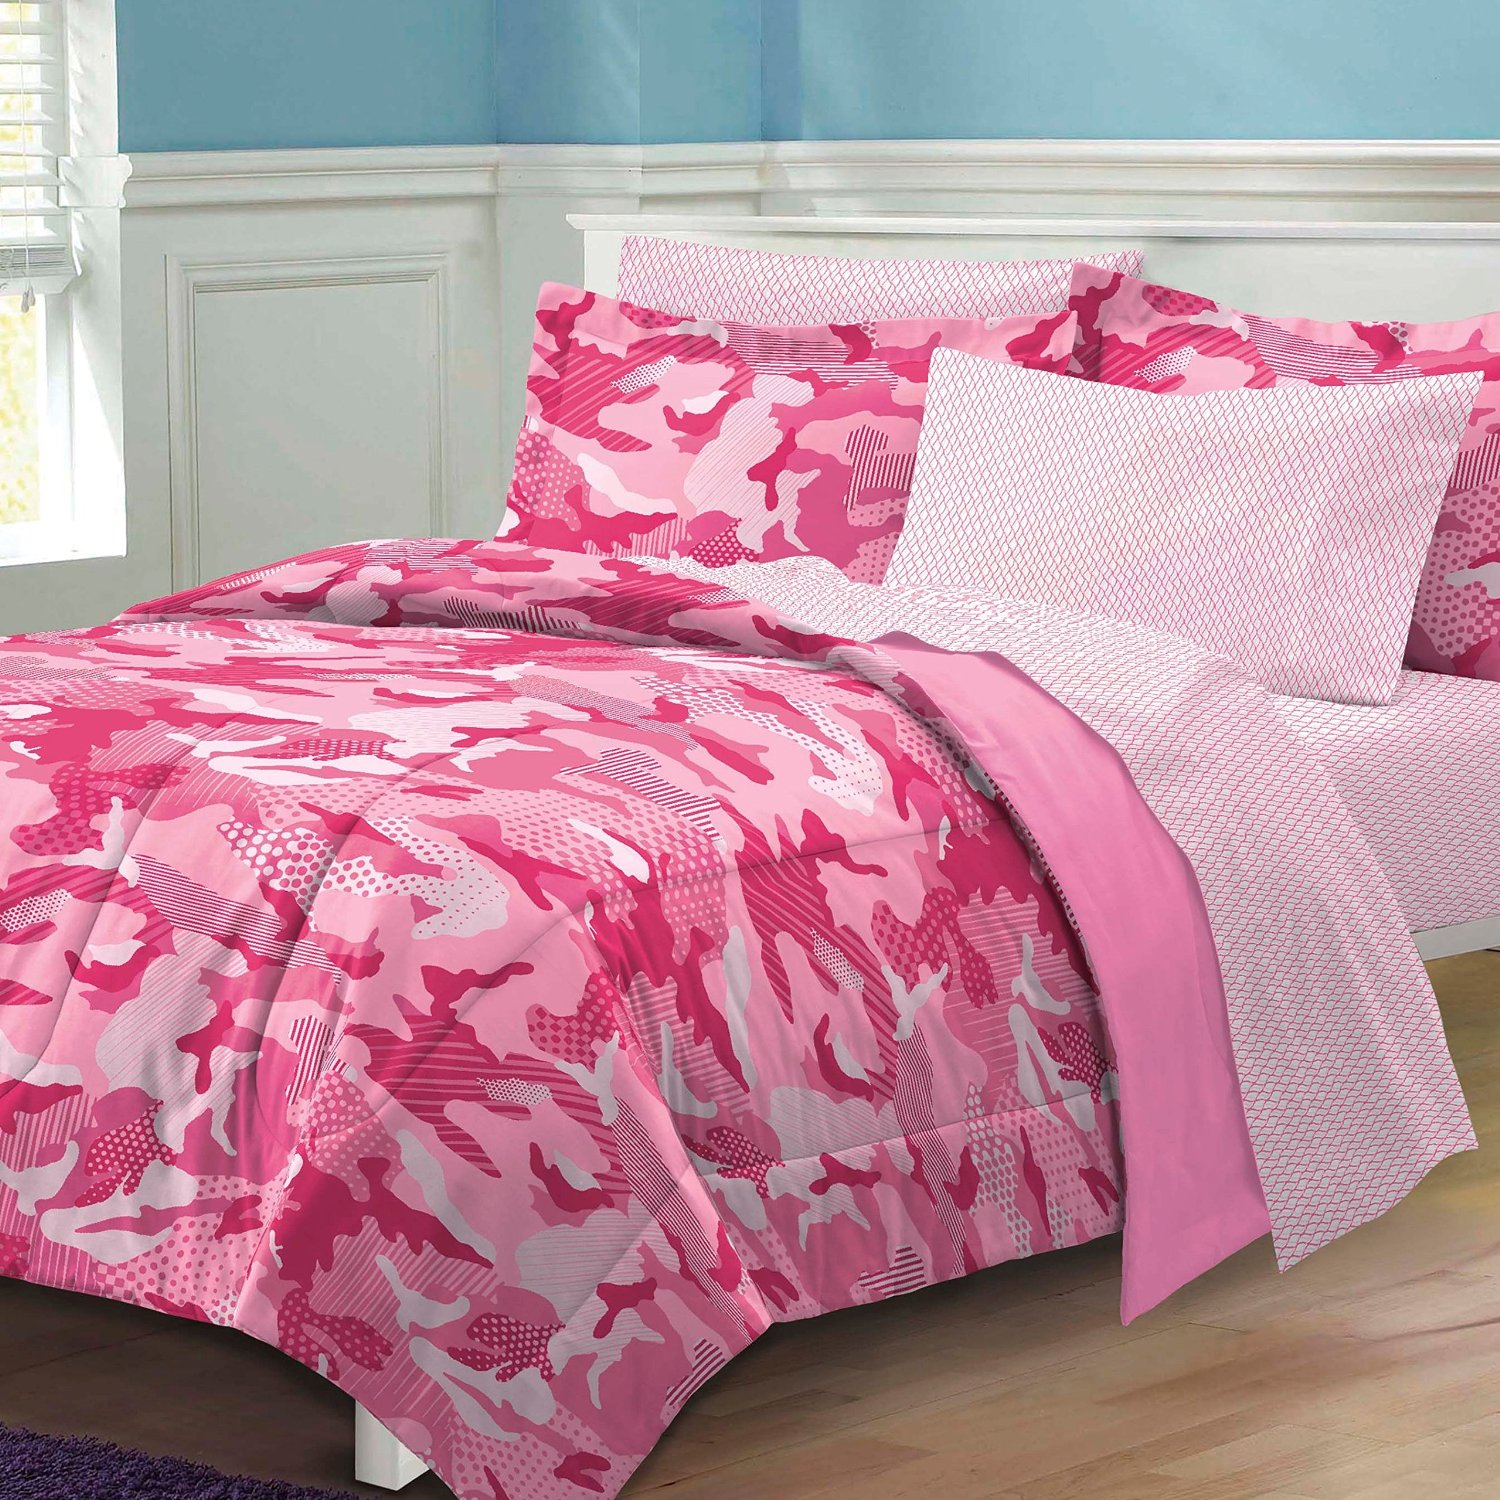 Pink Bedroom Decor Pink Camo Camouflage Comforters And Bedding For Girls Amp Teens